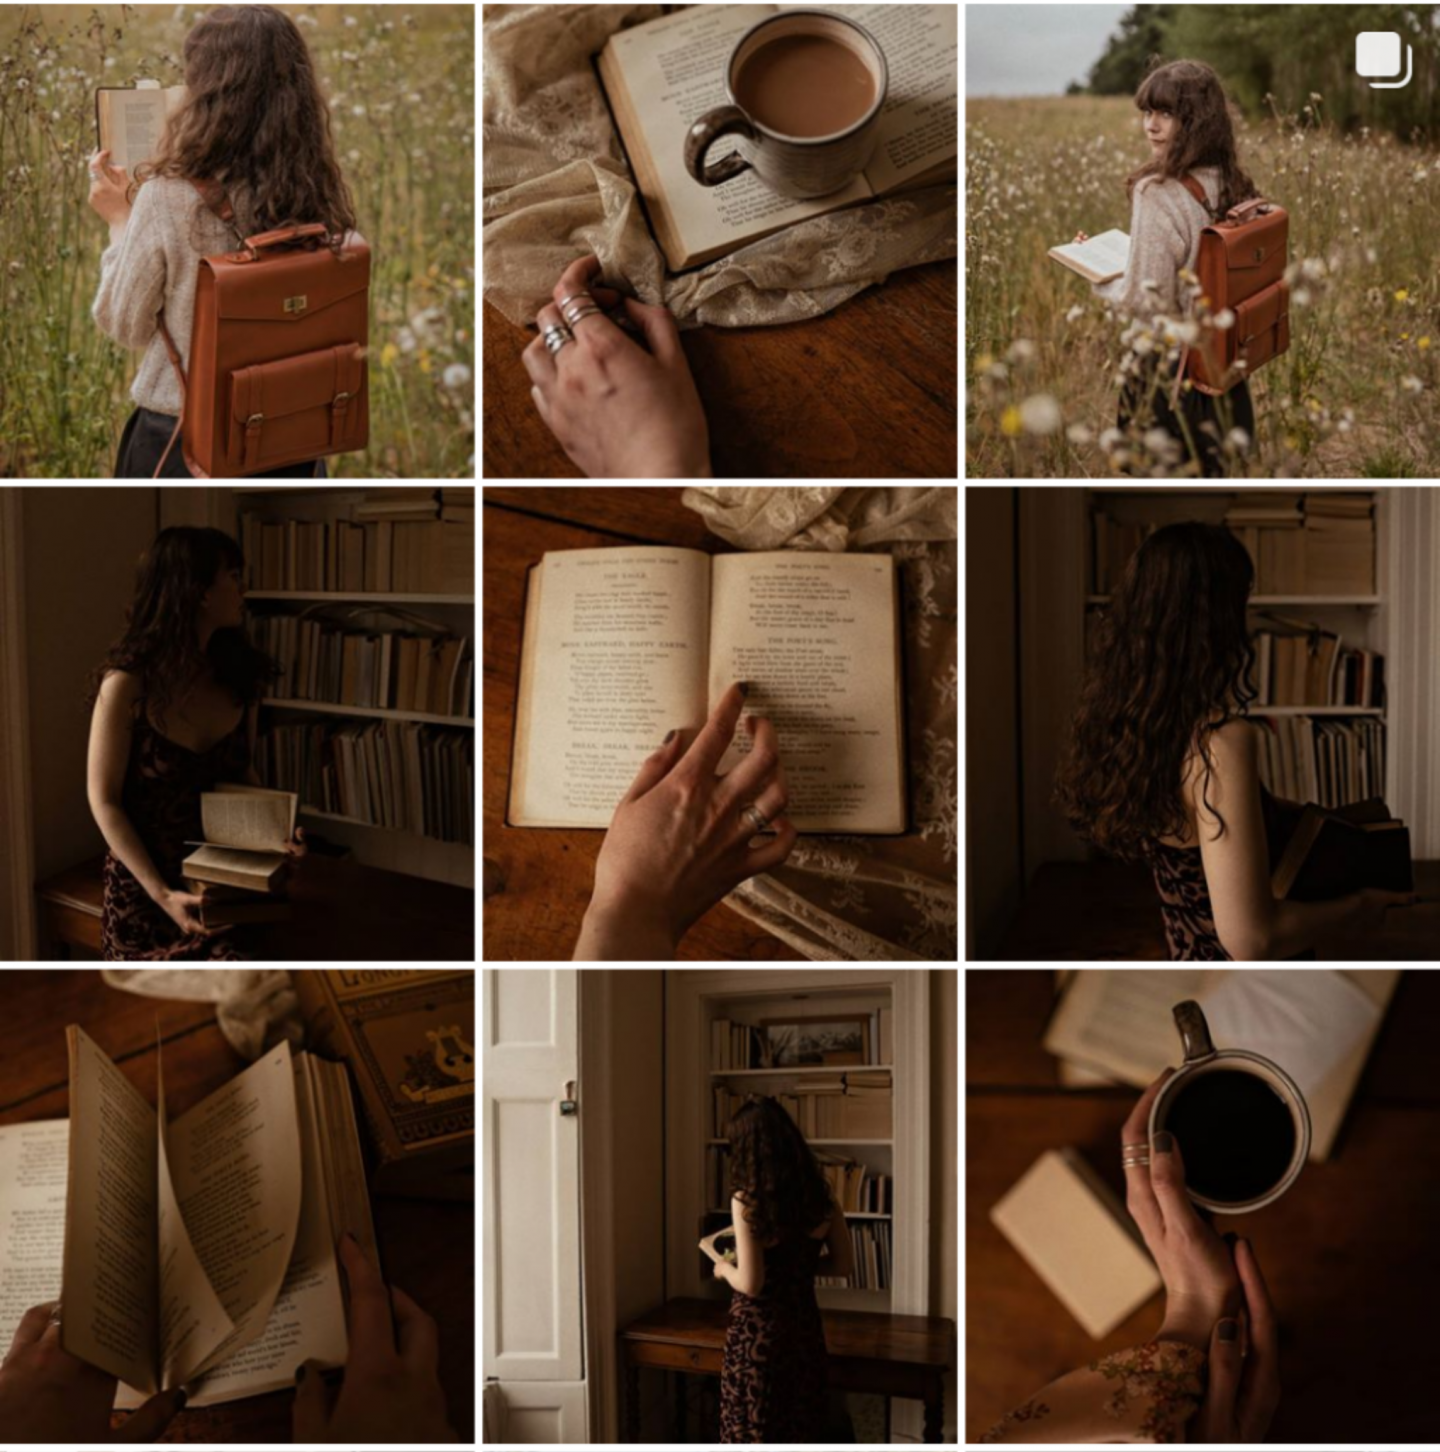 Interview with a Bookstagrammer Kate Macritchie Instagram Feed